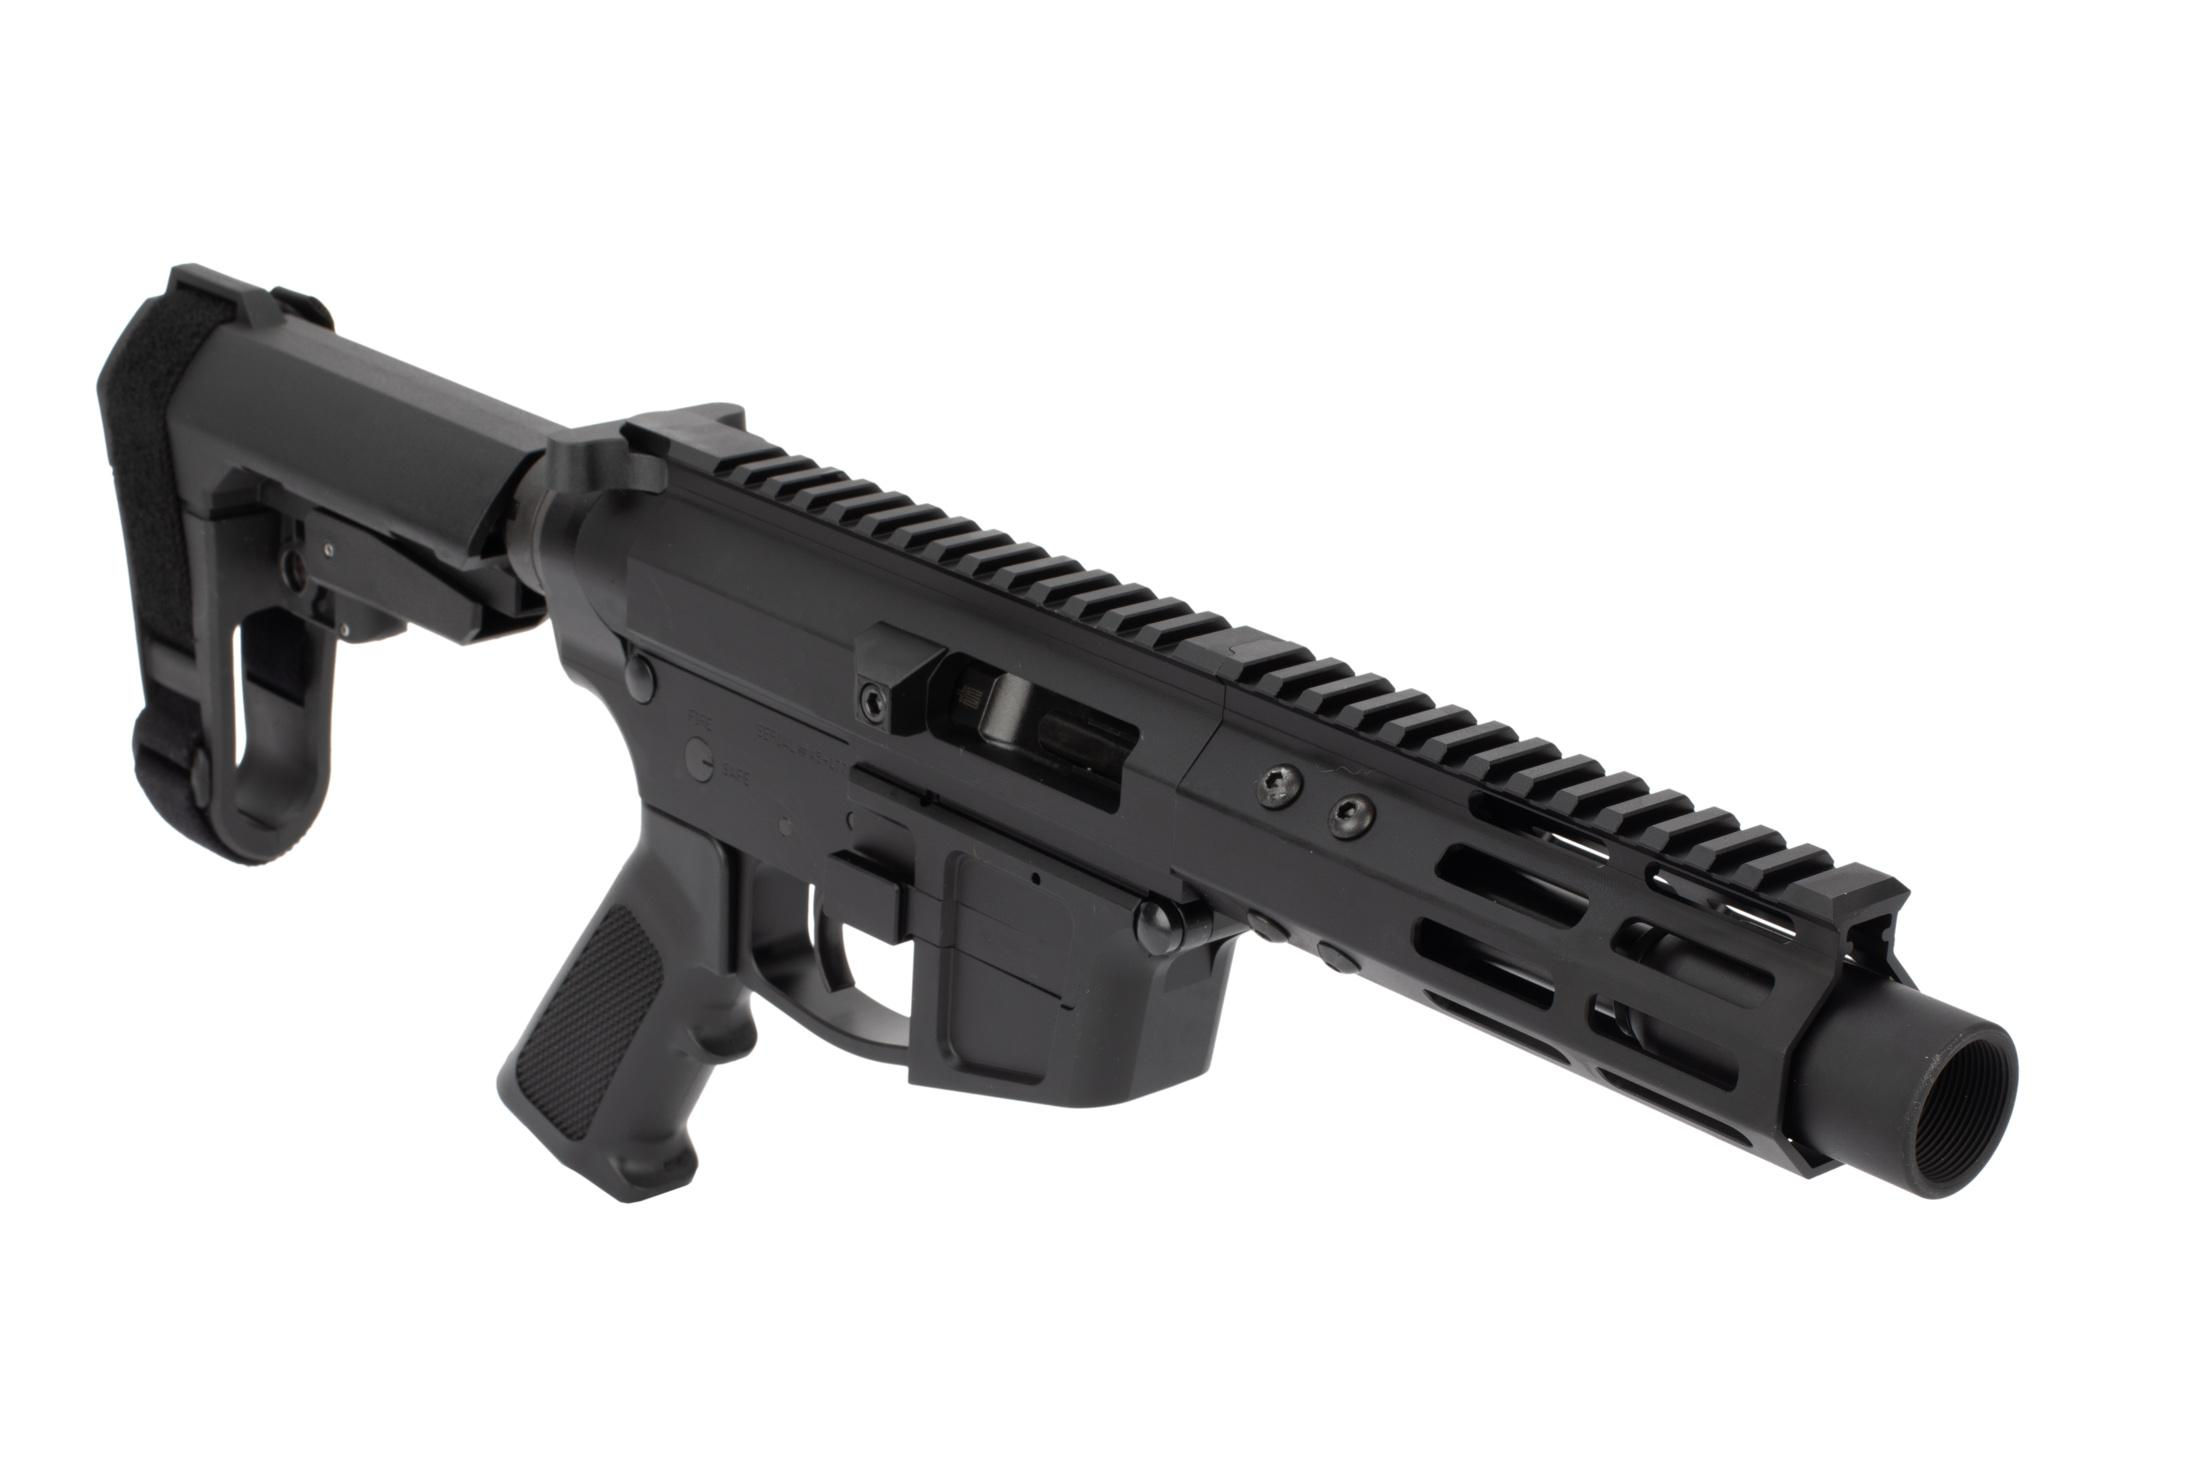 Foxtrot Mike Products PA exclusive Glock-style 5 ultra-light AR pistol chambered for .45 ACP with an SBA3 pistol arm brace